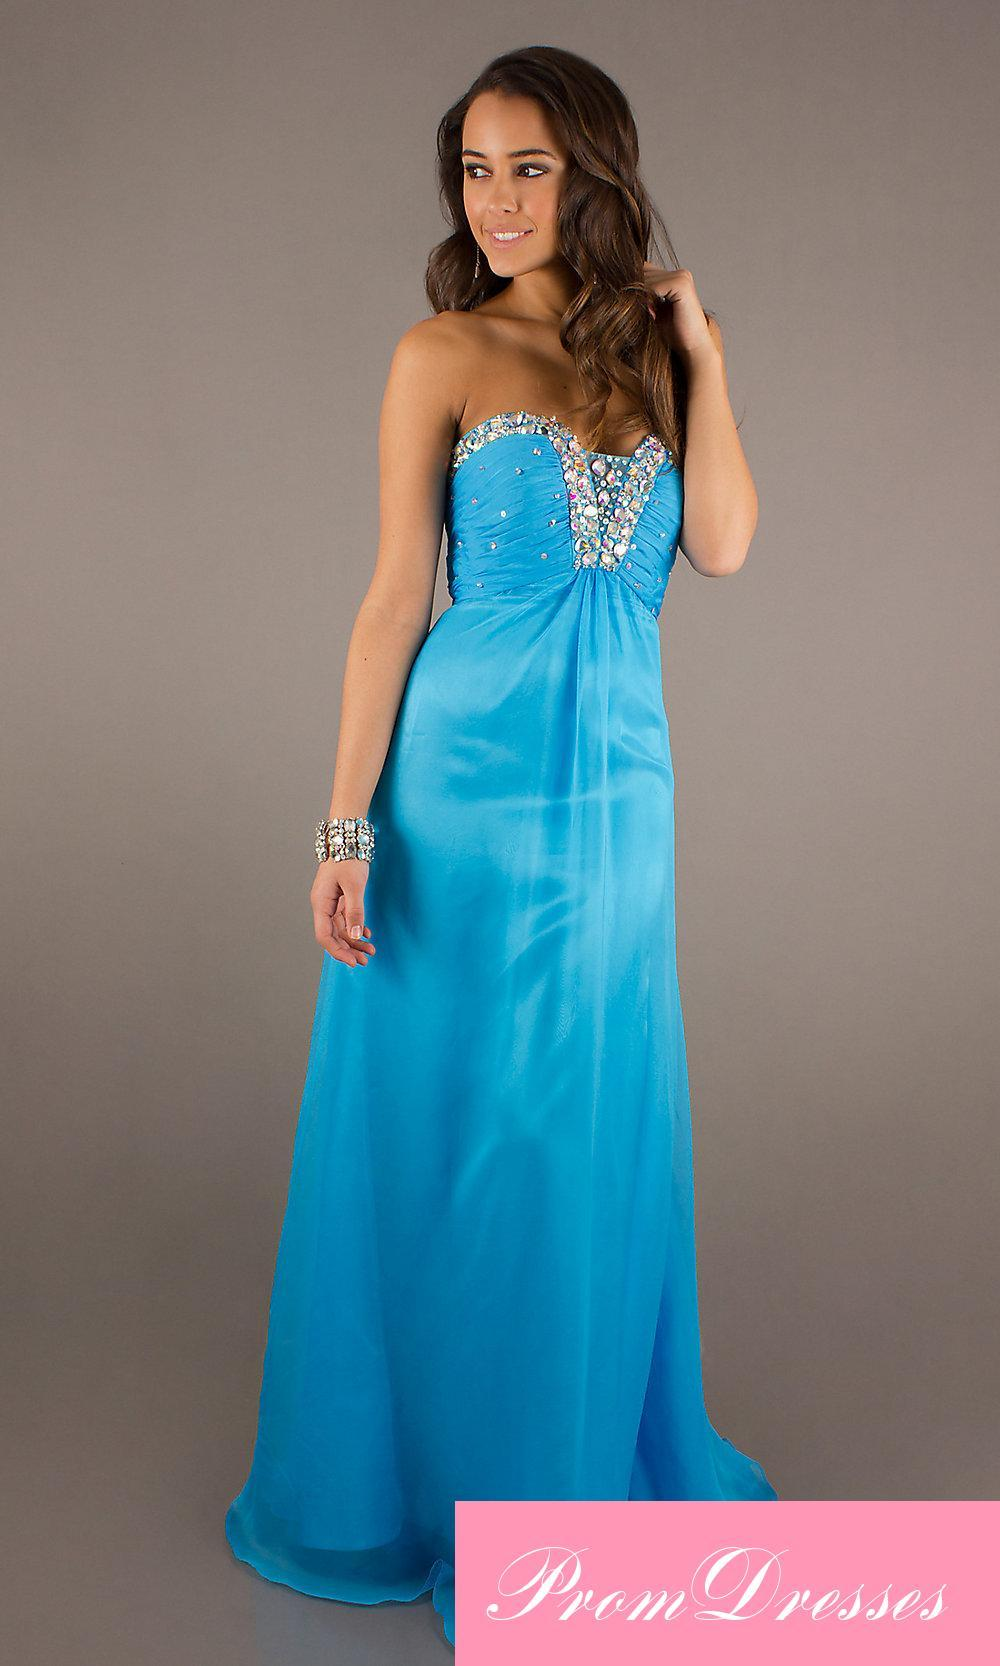 Strapless Dress: Find a (short) Strapless Dress at Dressprom2014.COM